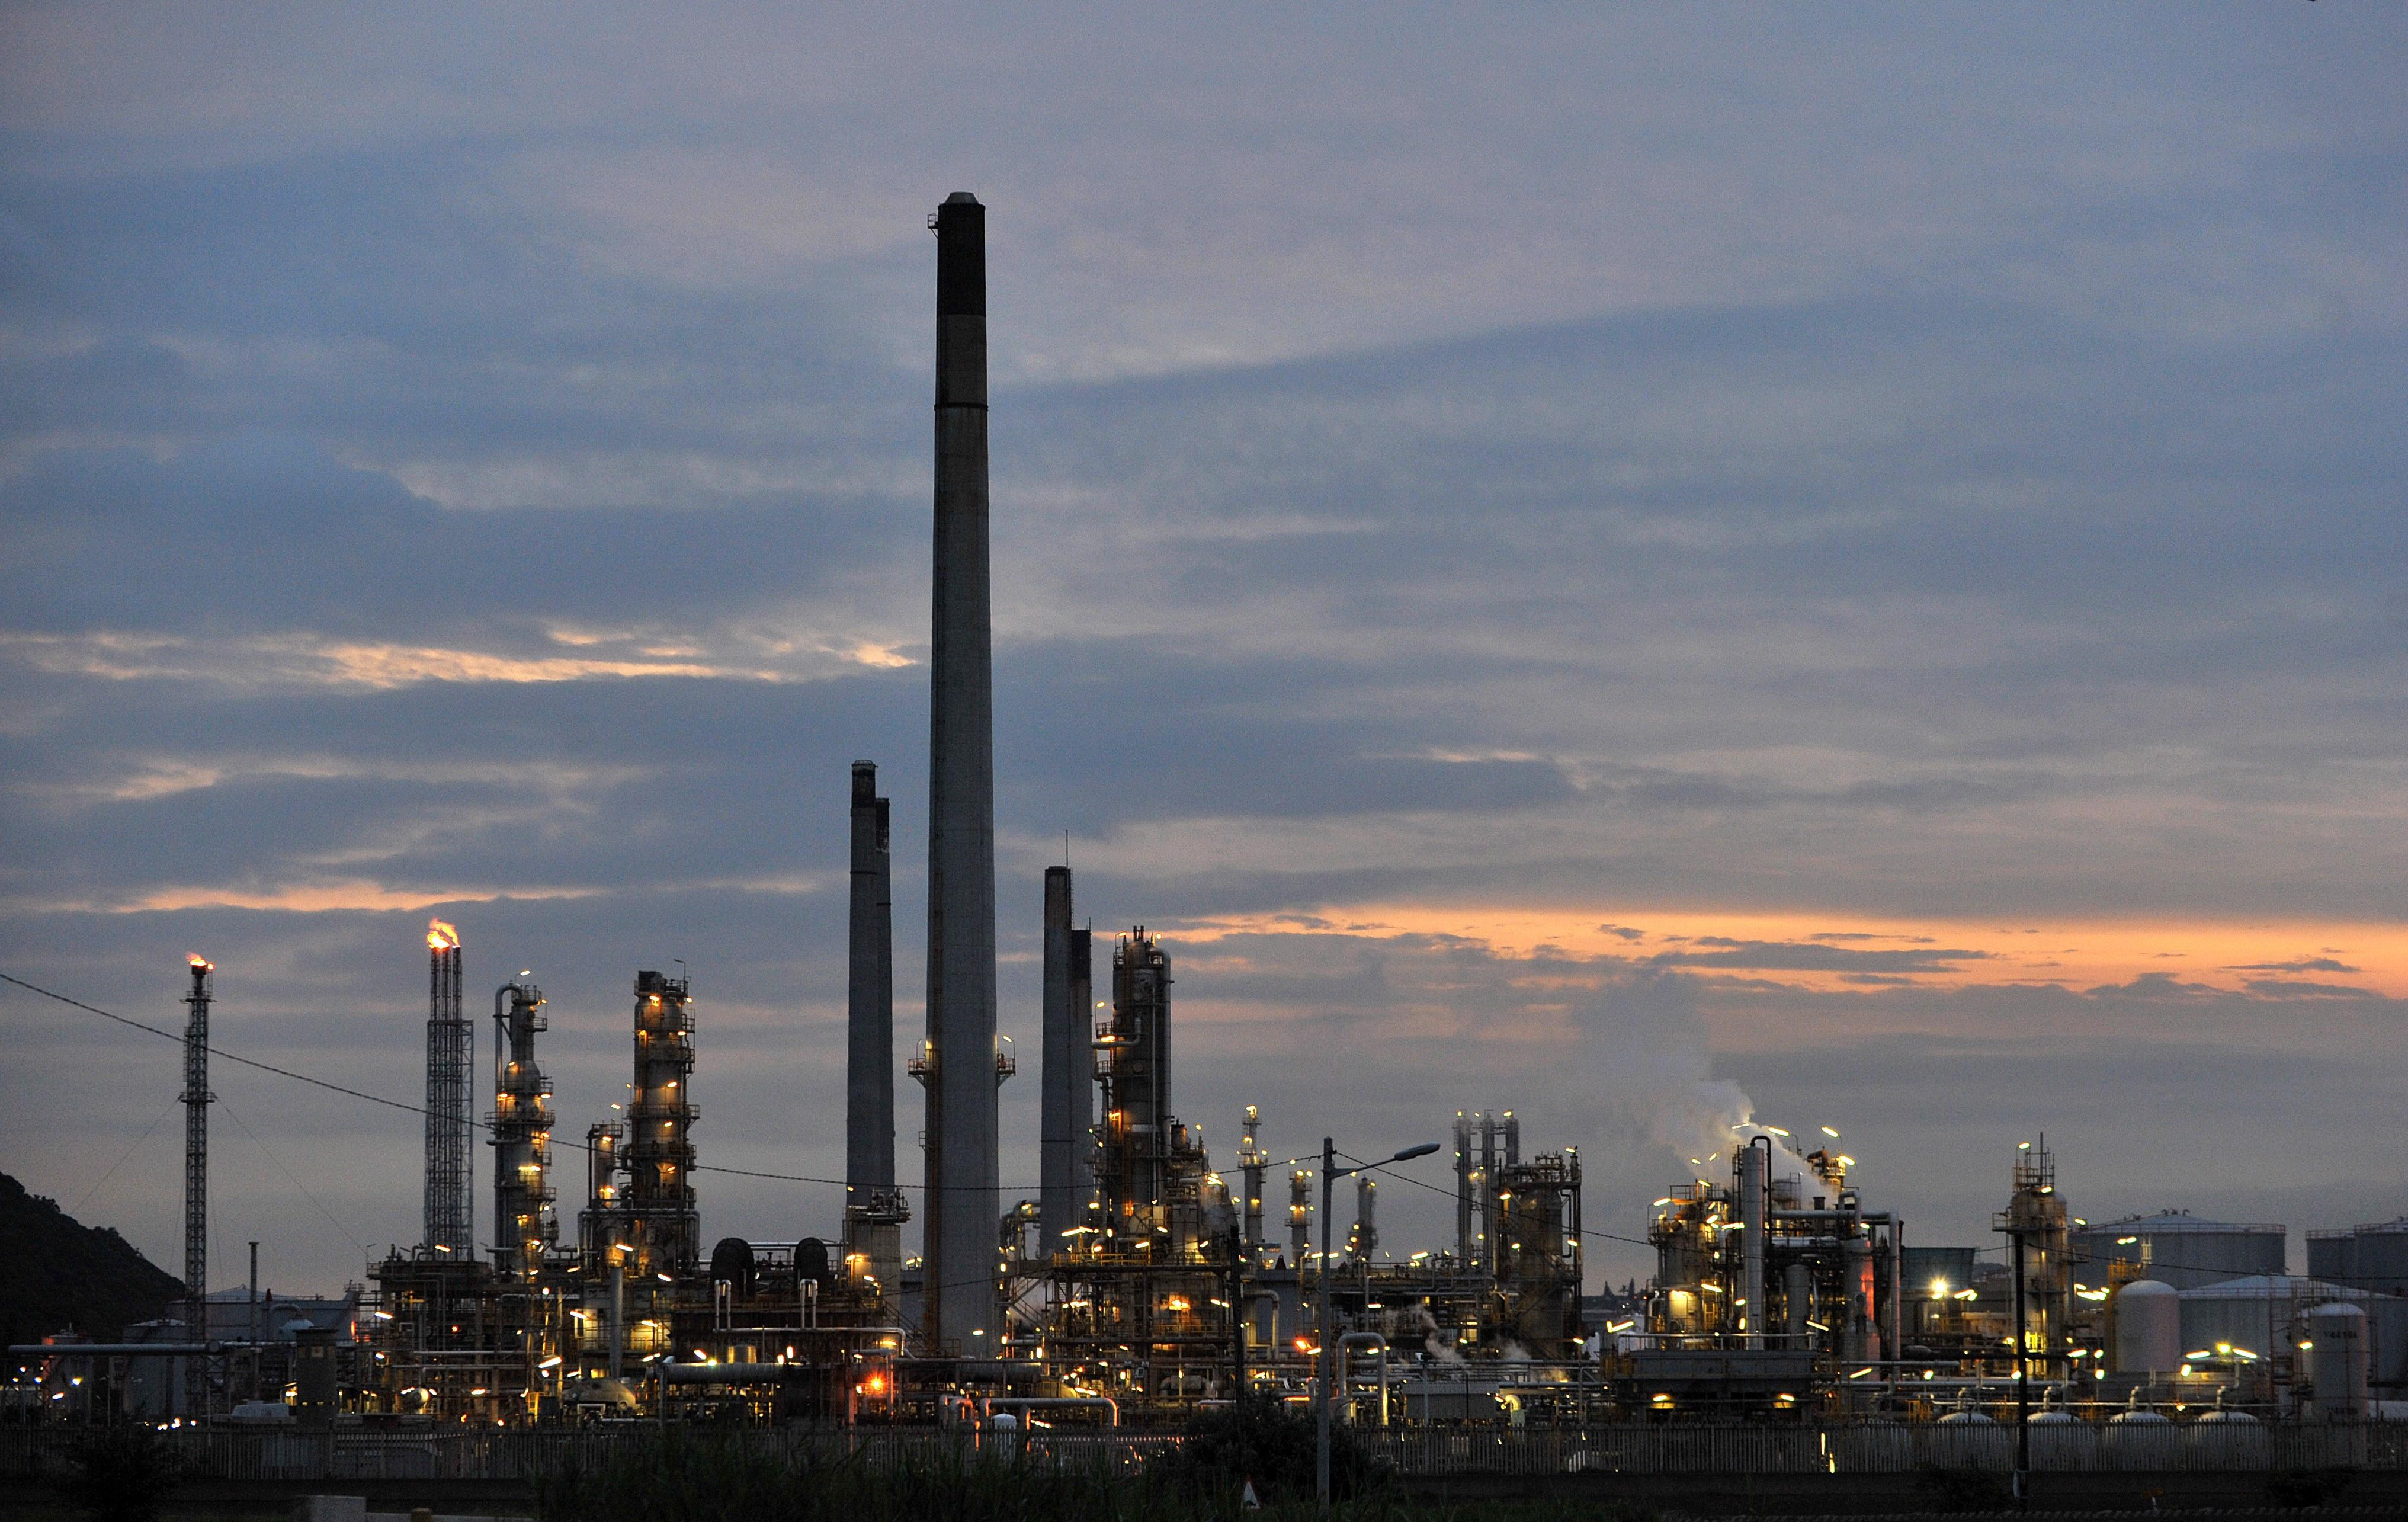 South African Petroleum Refinery